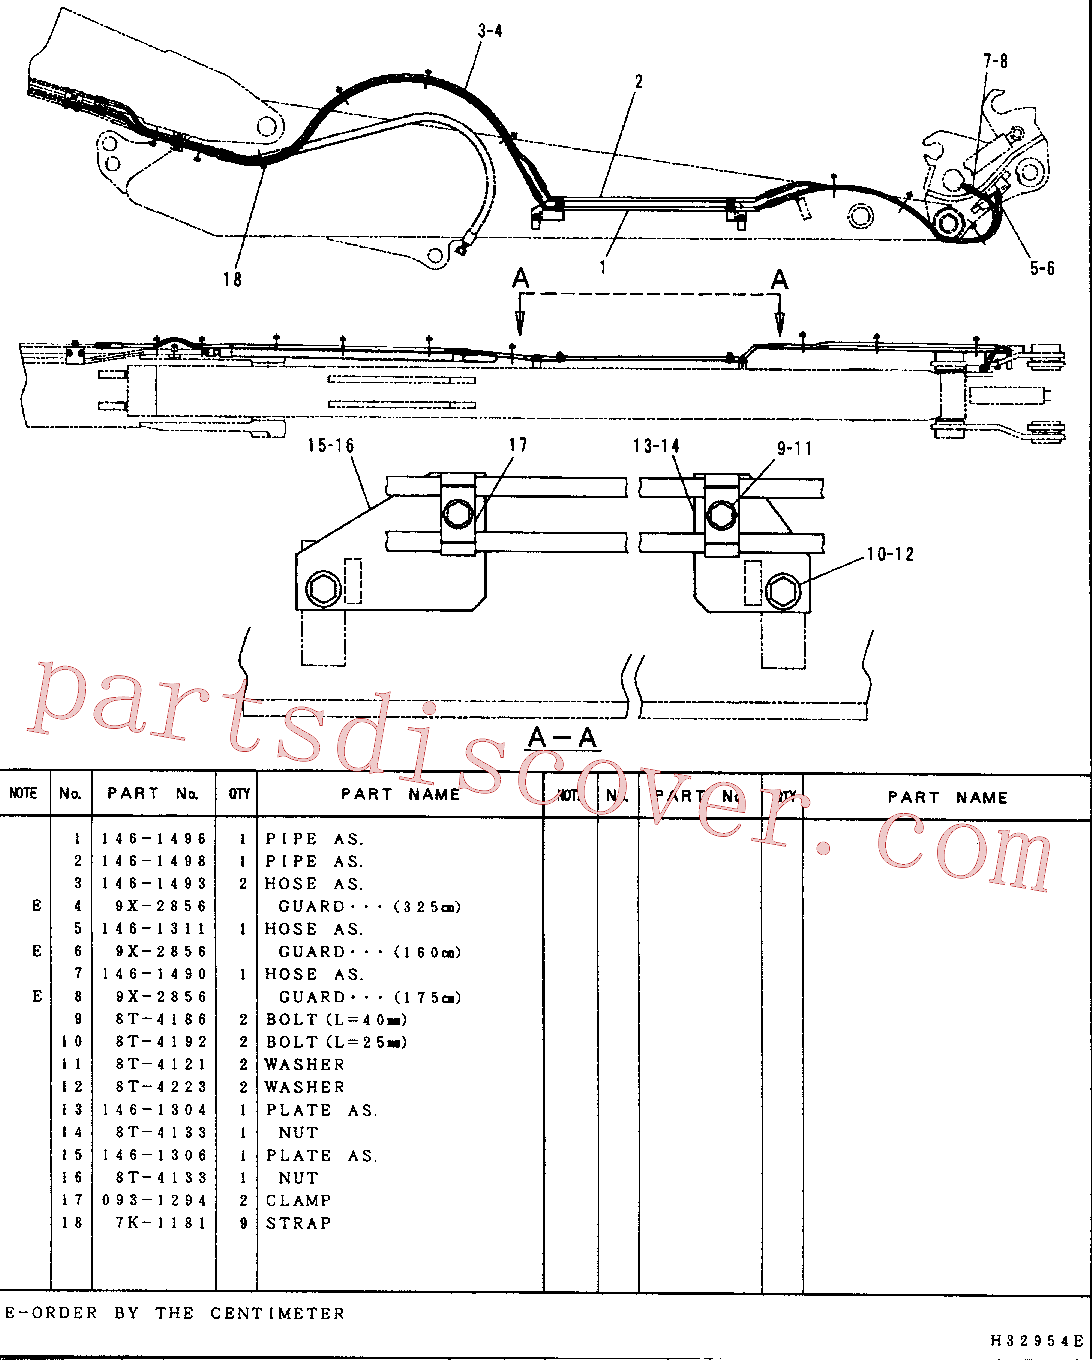 CAT 146-1306 for 312B Excavator(EXC) hydraulic system 146-1478 Assembly